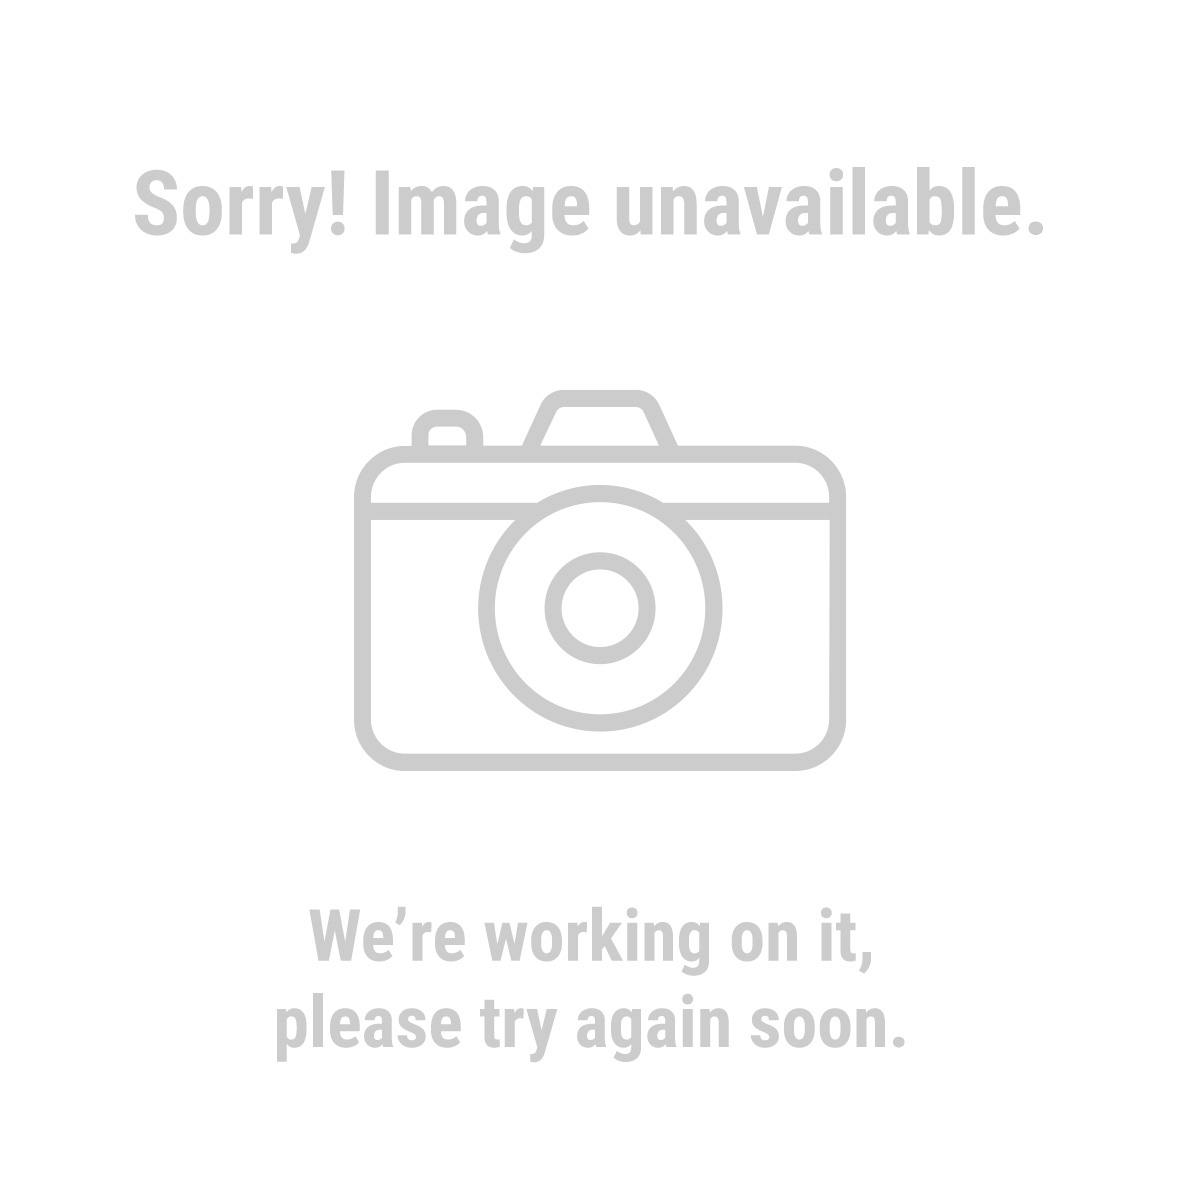 HARDY 62416 Split Leather Work Gloves with Flex Back